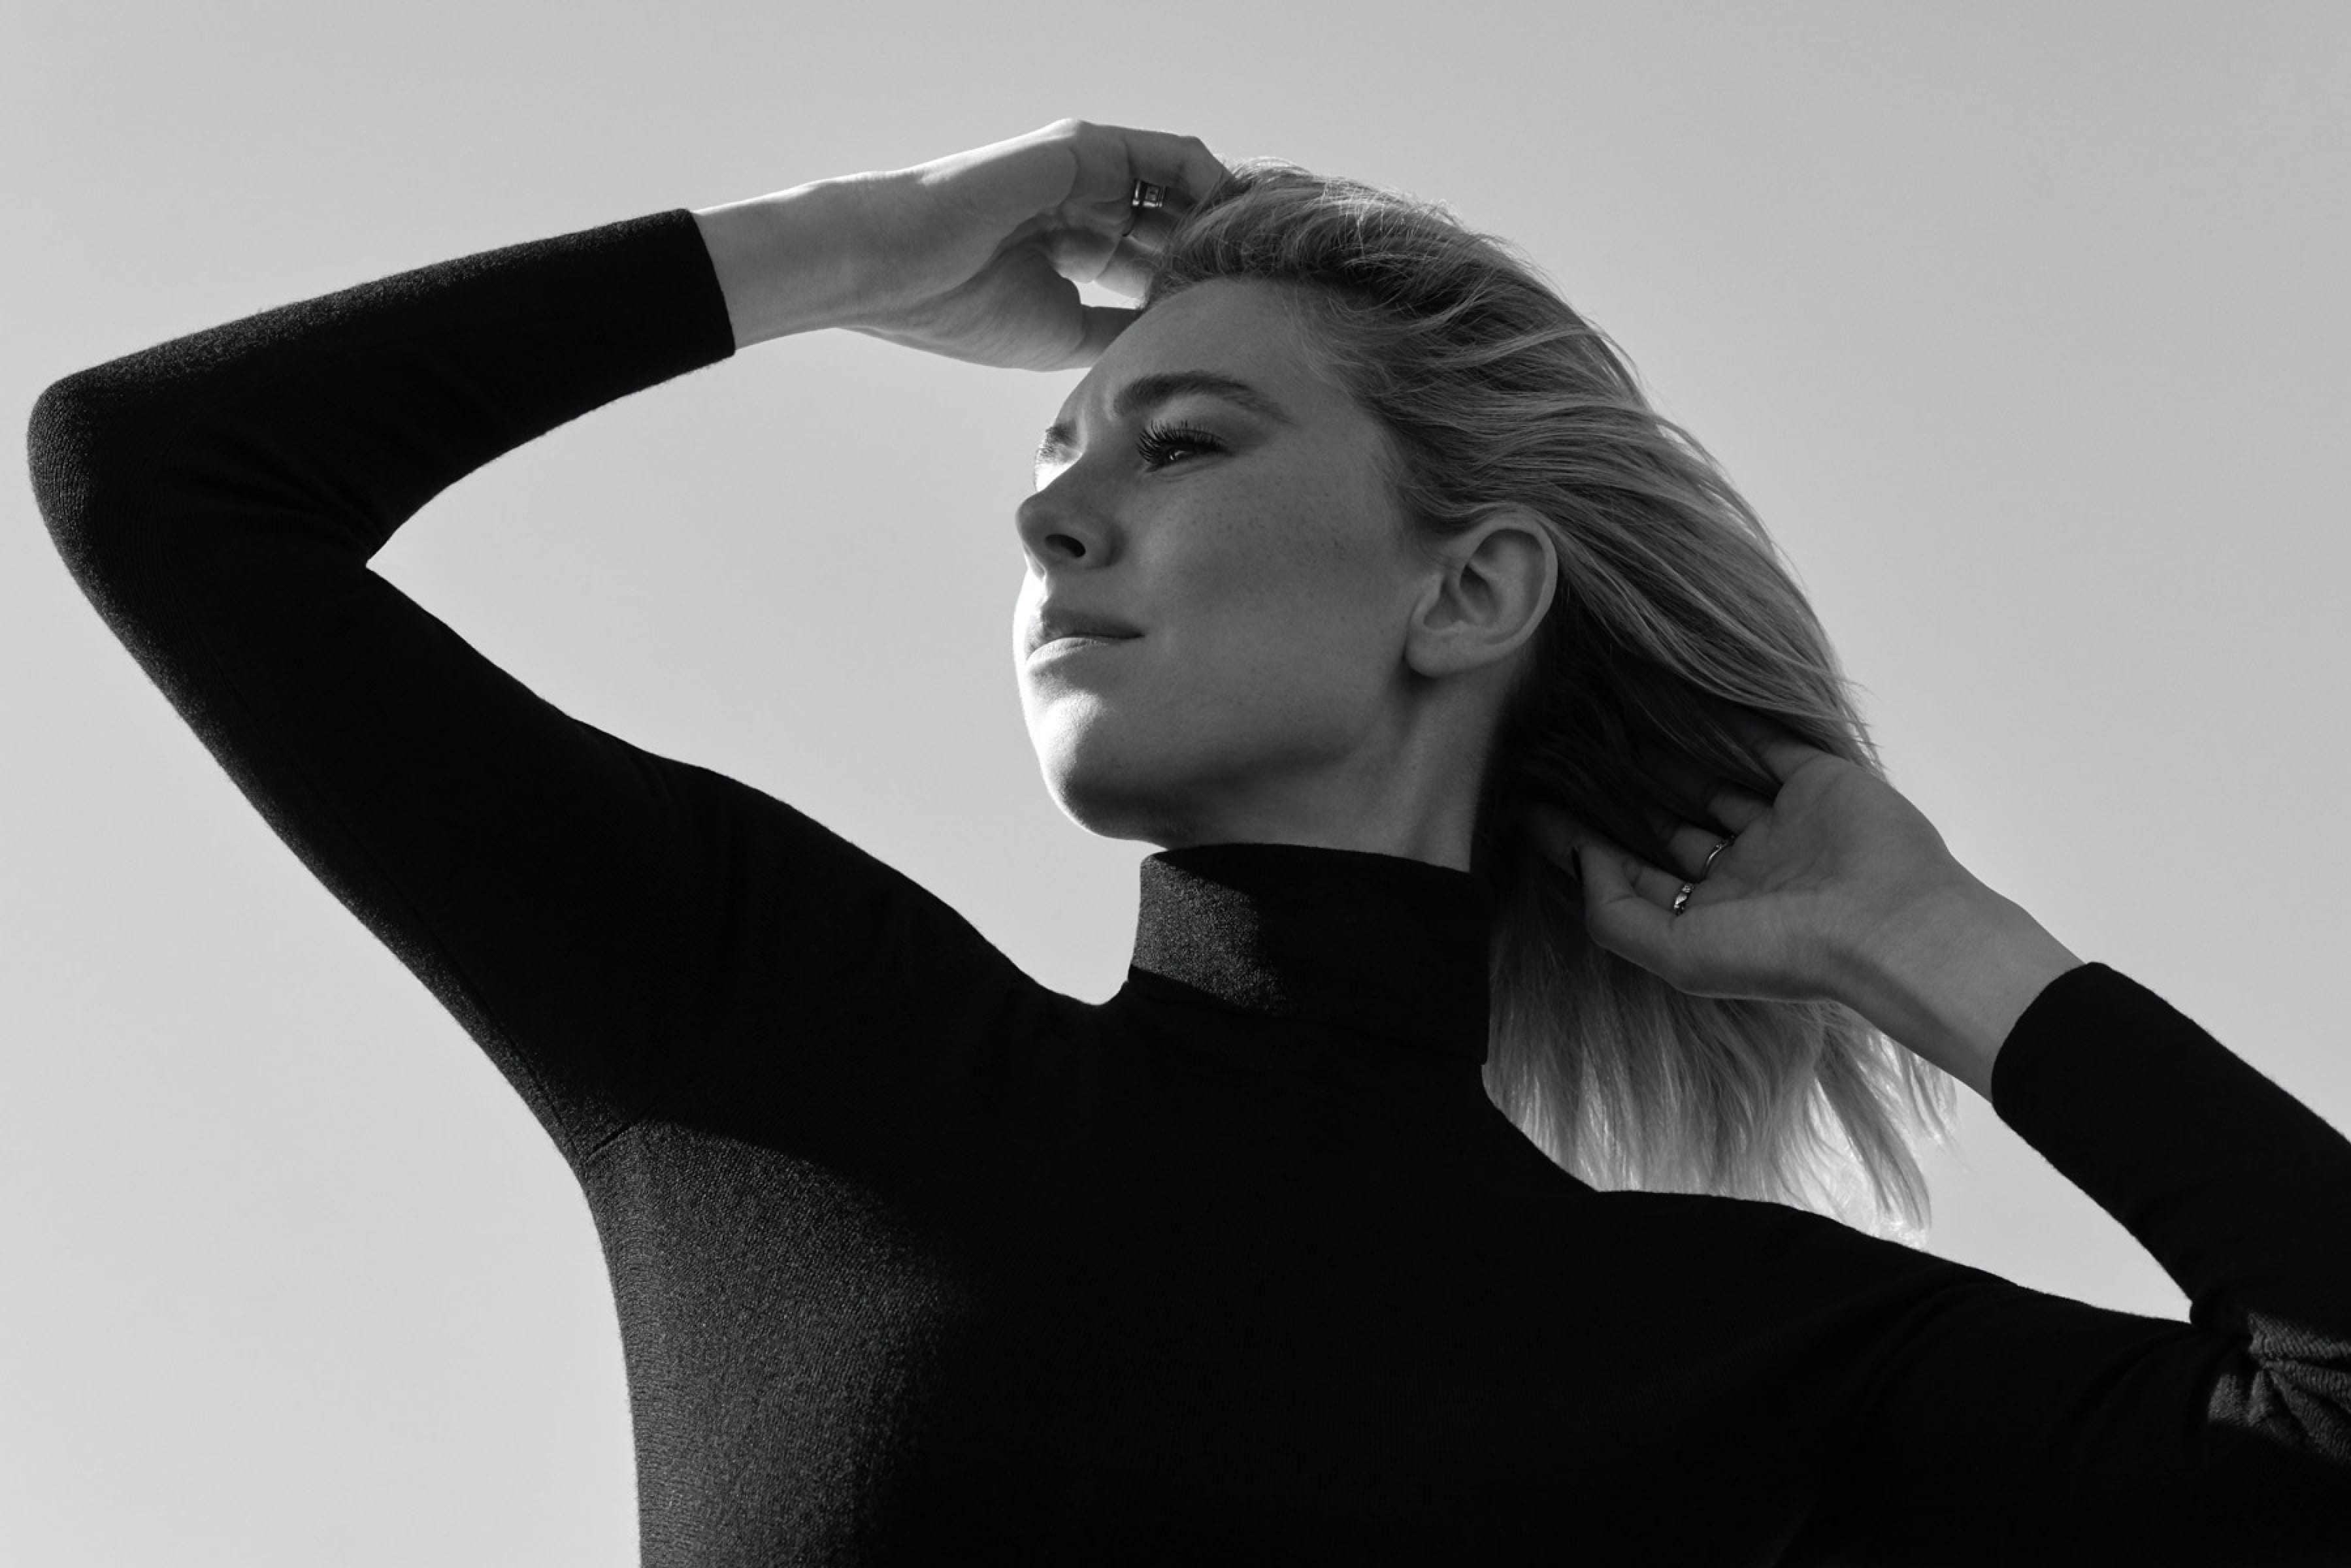 Vanessa Kirby poses in profile, arms akimbo. The sun hits her face and her hair blows in the breeze.